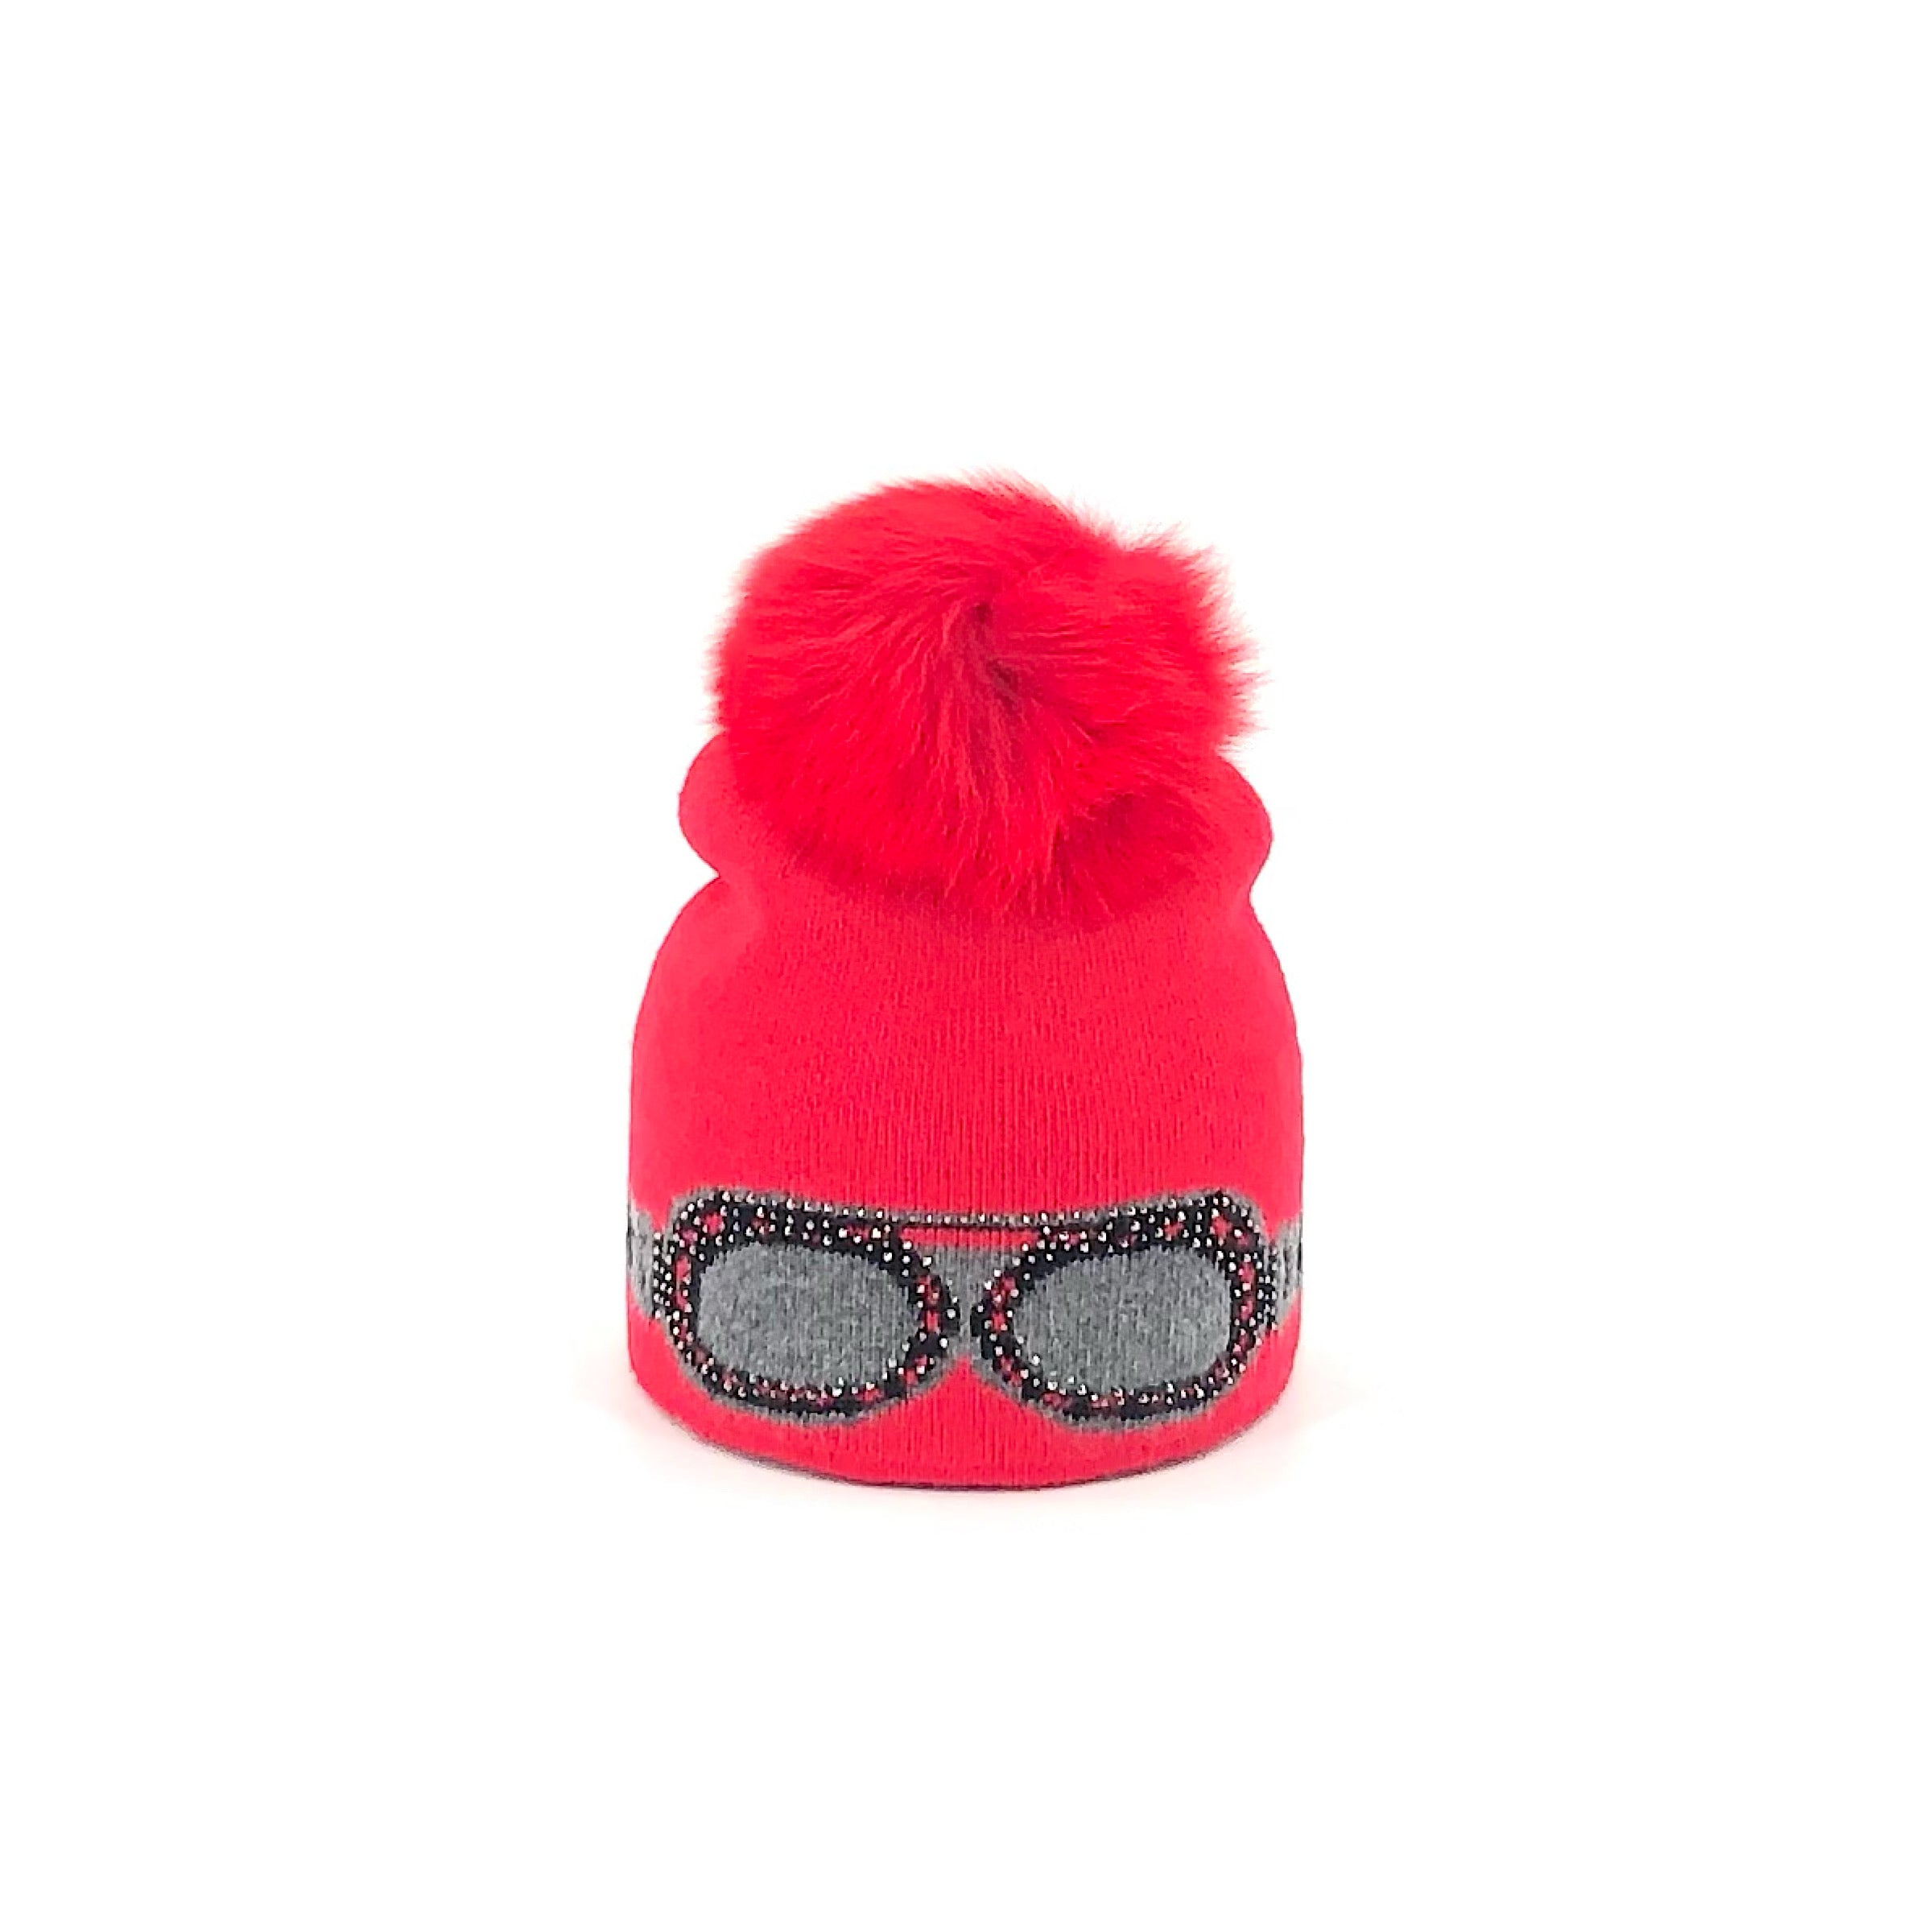 The Red Sparkle Sunglass Beanie With Red Fox Pom